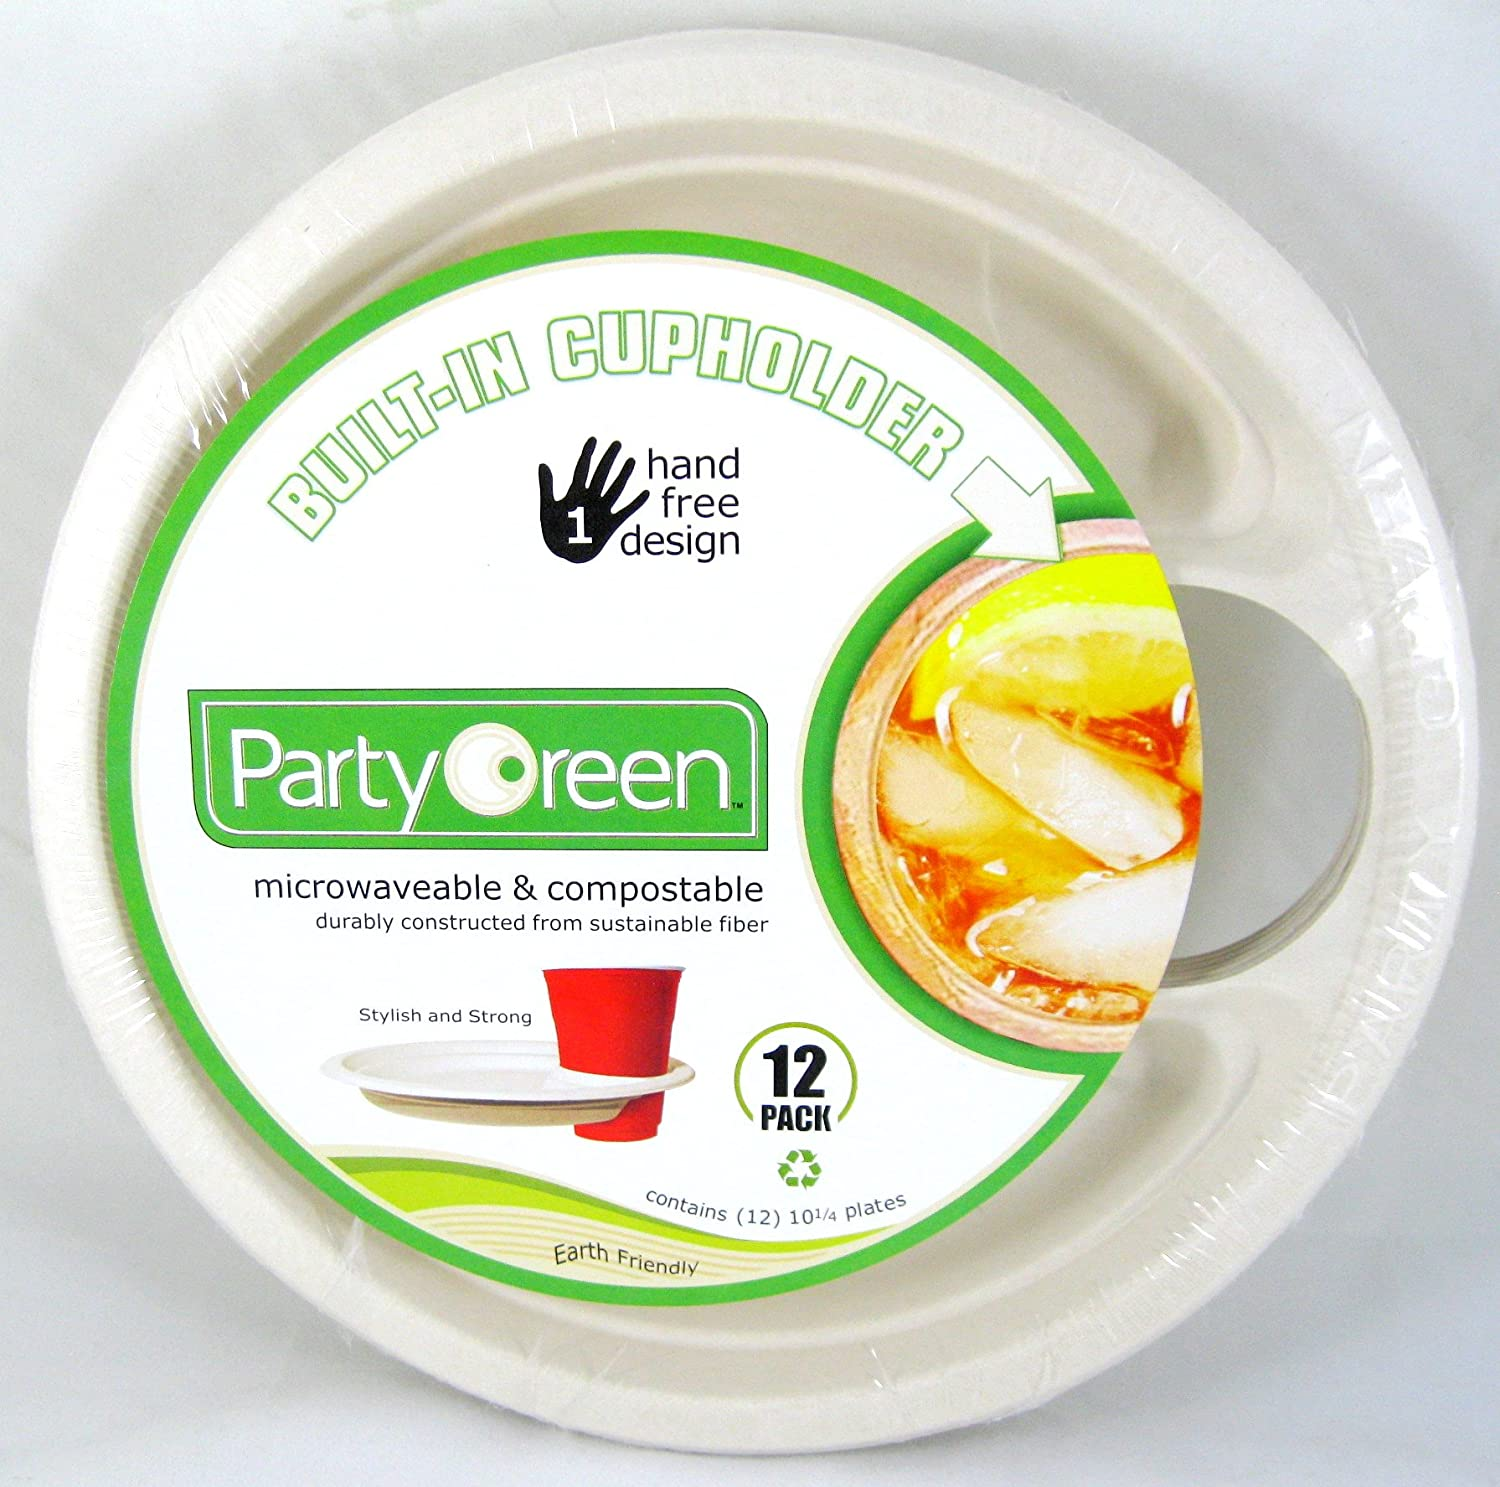 Amazon.com 3 Pk Party Green Plates with Built-in Cup Holder - 12 Pack (Total of 36) Kitchen u0026 Dining  sc 1 st  Amazon.com & Amazon.com: 3 Pk Party Green Plates with Built-in Cup Holder - 12 ...